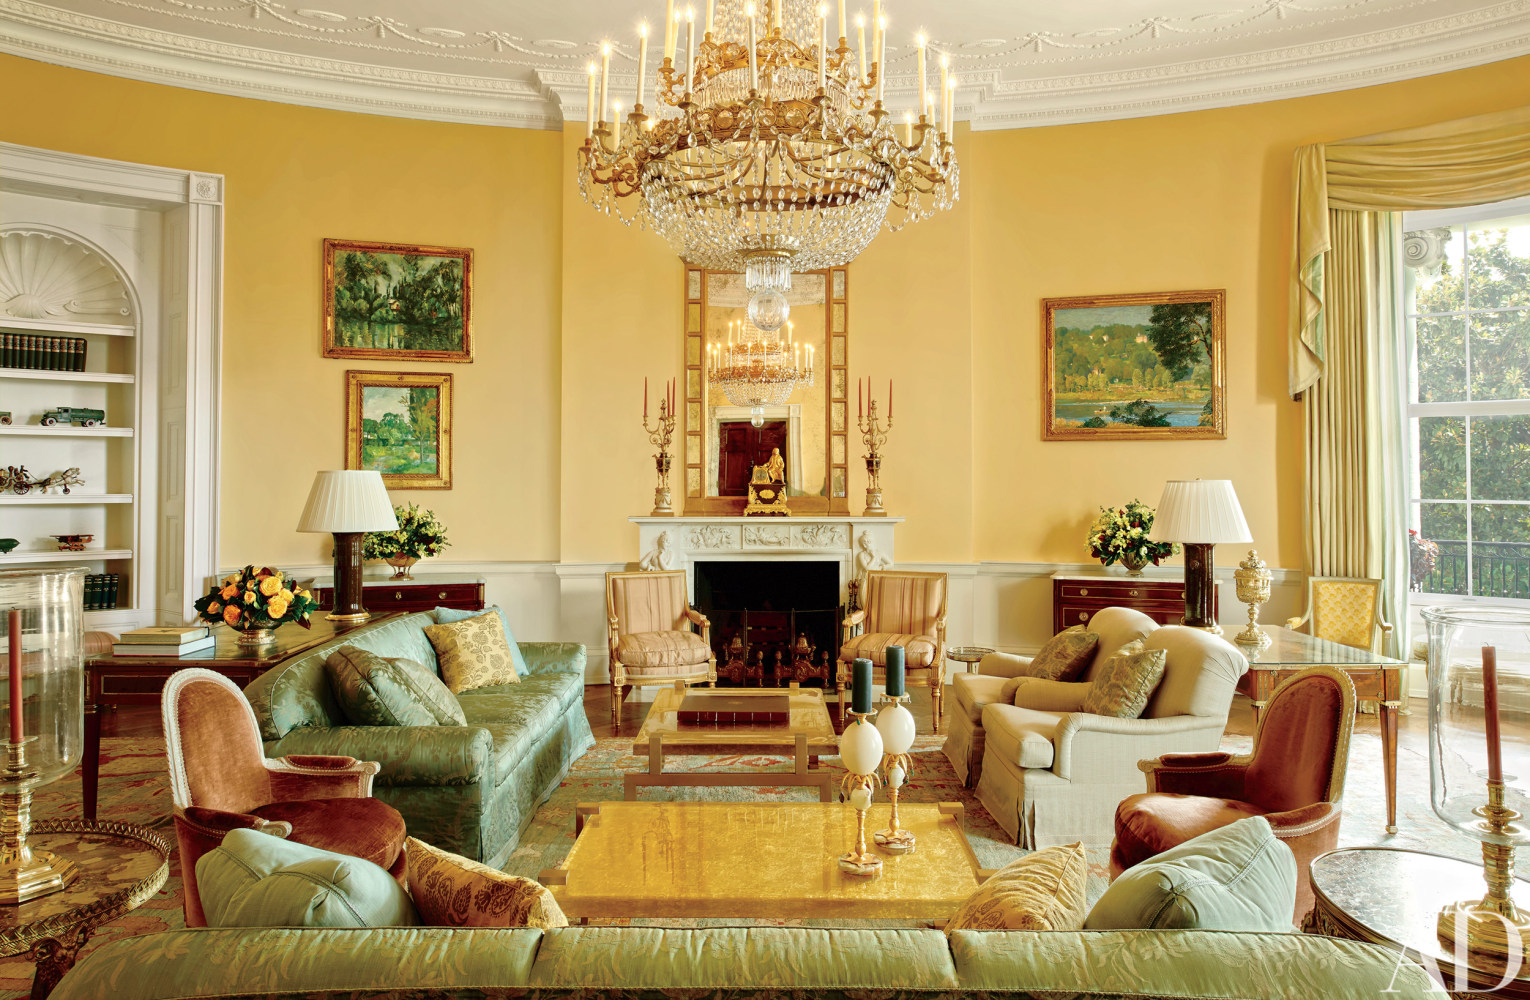 Look inside the obamas 39 stylish white house home nbc news - Decorated homes ...